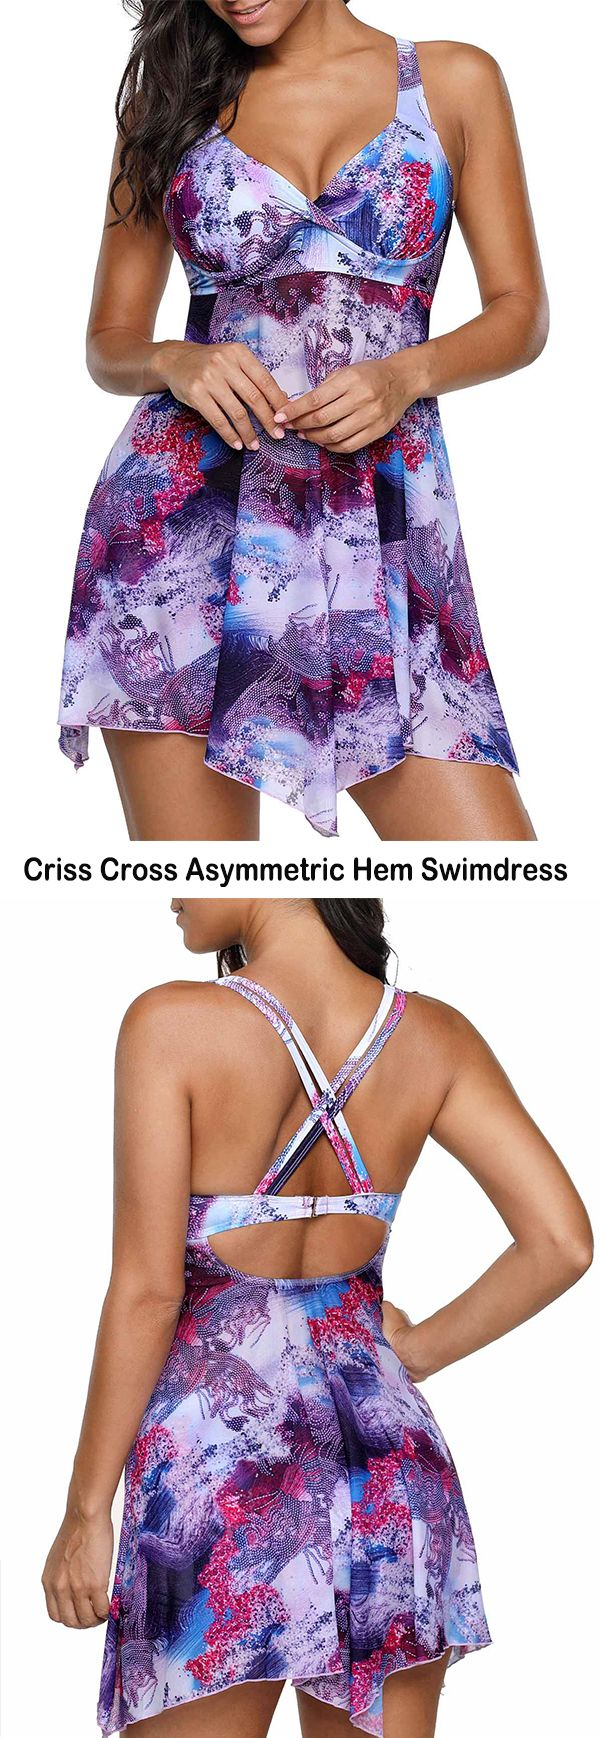 Criss Cross Asymmetric Hem Swimdress and Panty   #liligal #swimwear #swimsuit